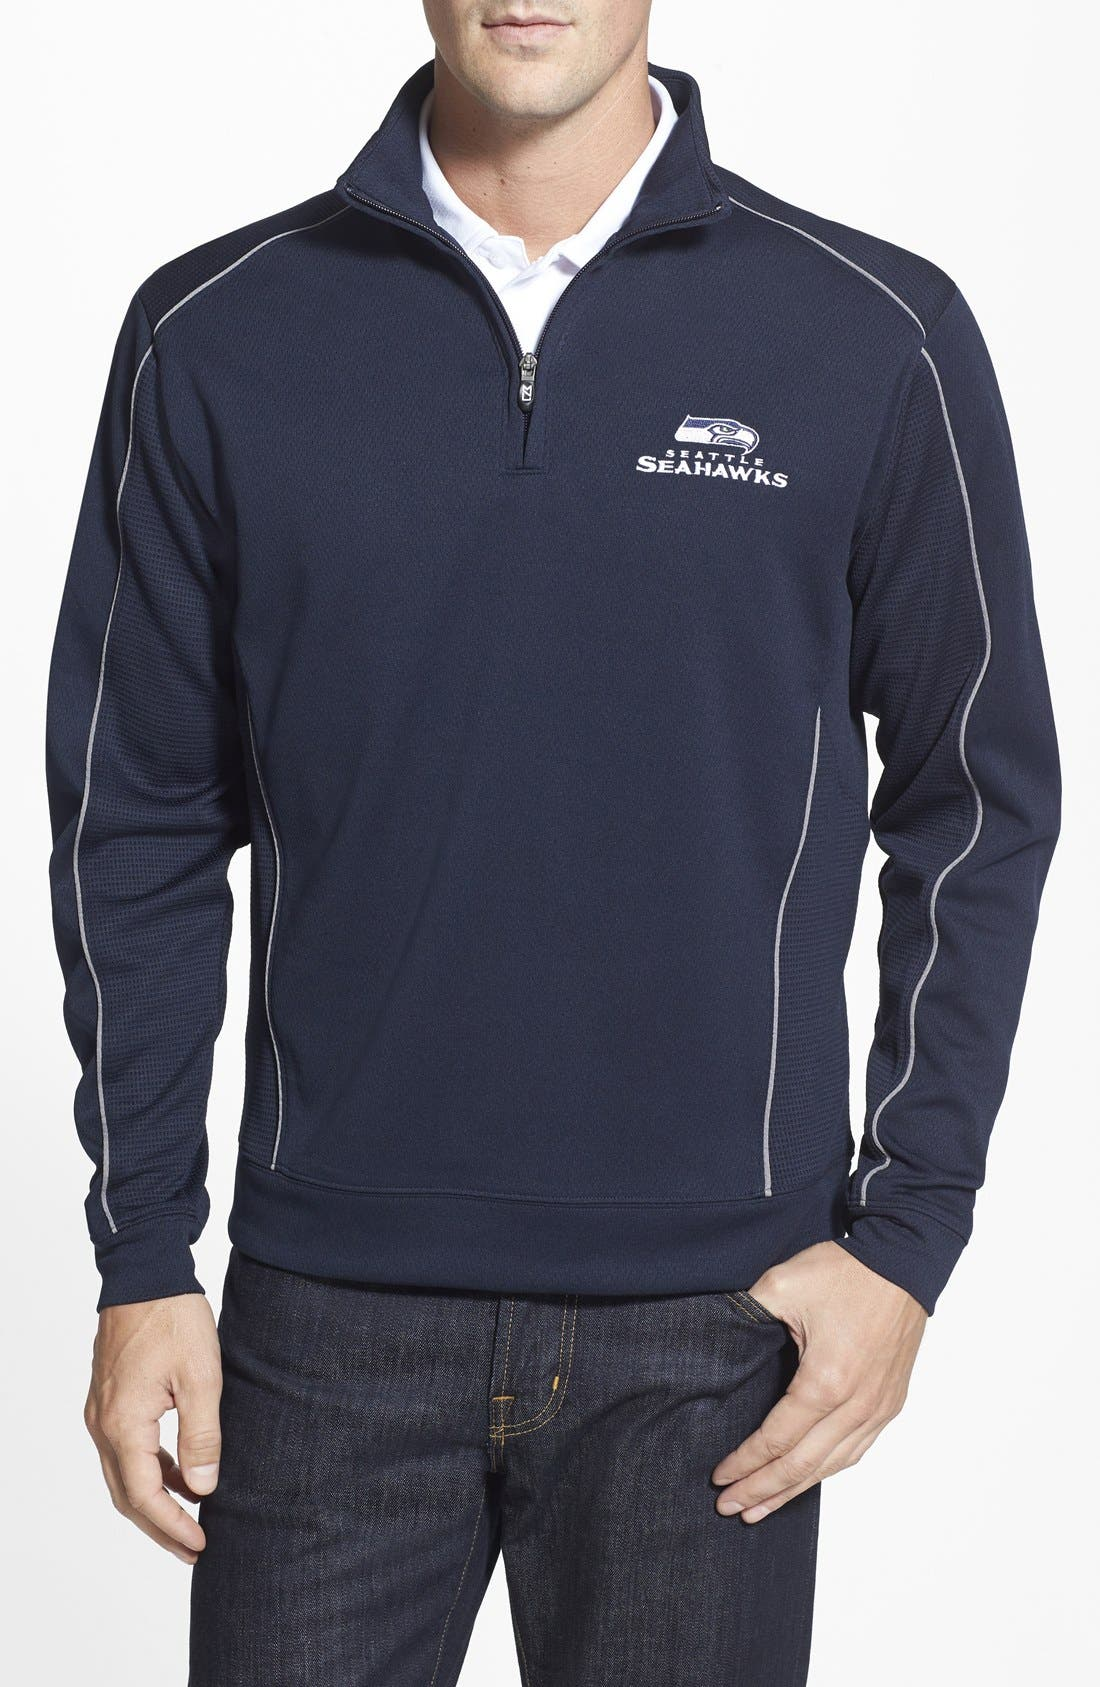 Seattle Seahawks - Edge DryTec Moisture Wicking Half Zip Pullover,                         Main,                         color, 420